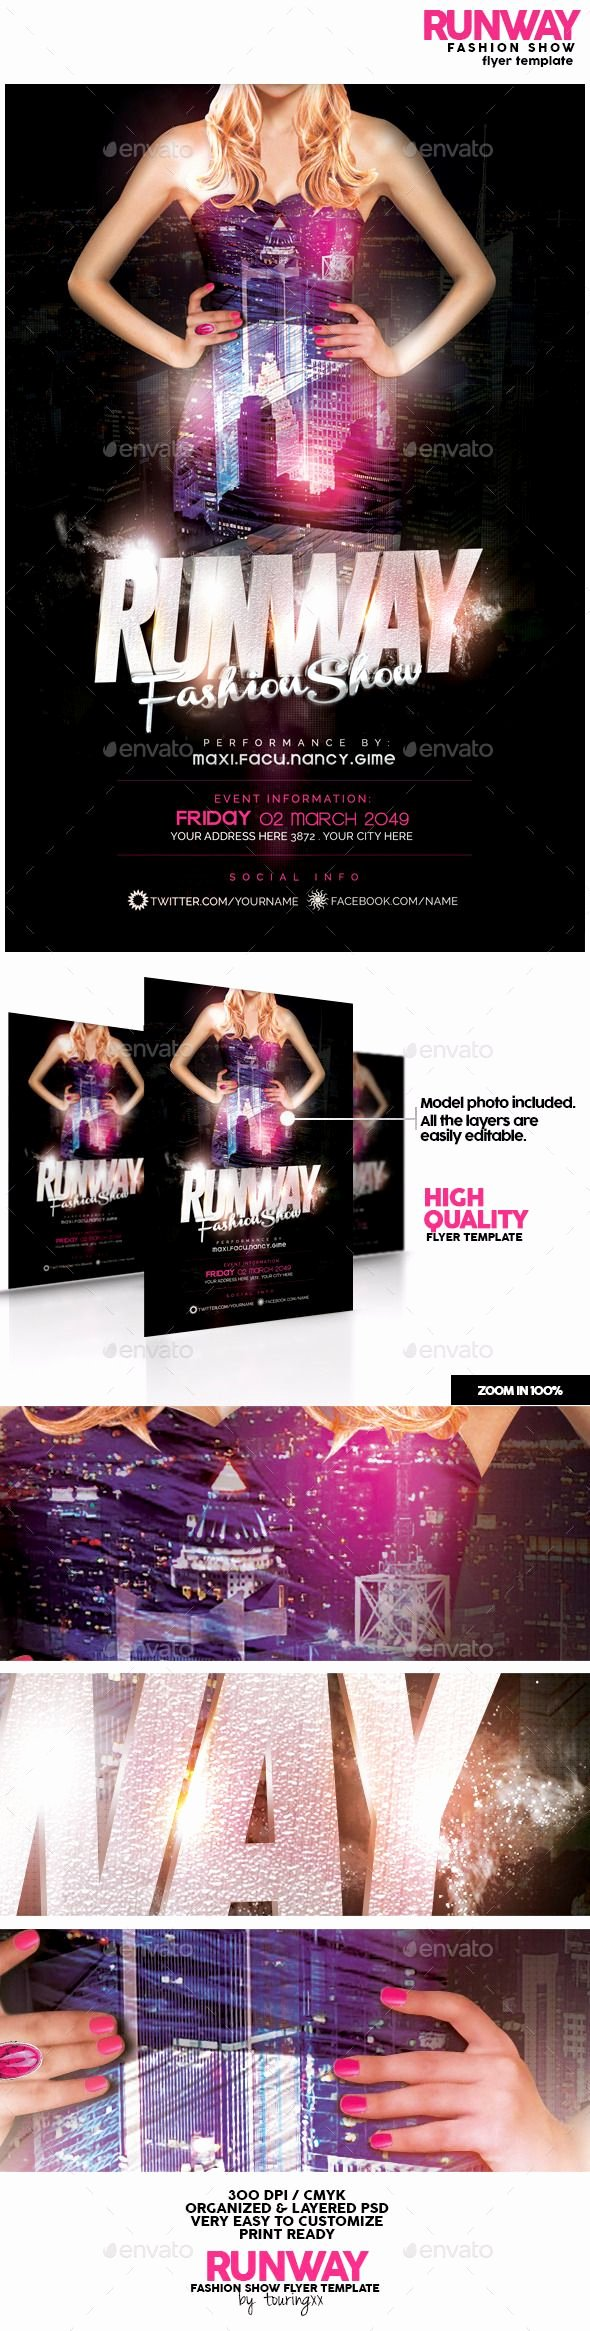 Fashion Show Flyer Template Luxury Runway Fashion Show Flyer Template Fashion Flyers